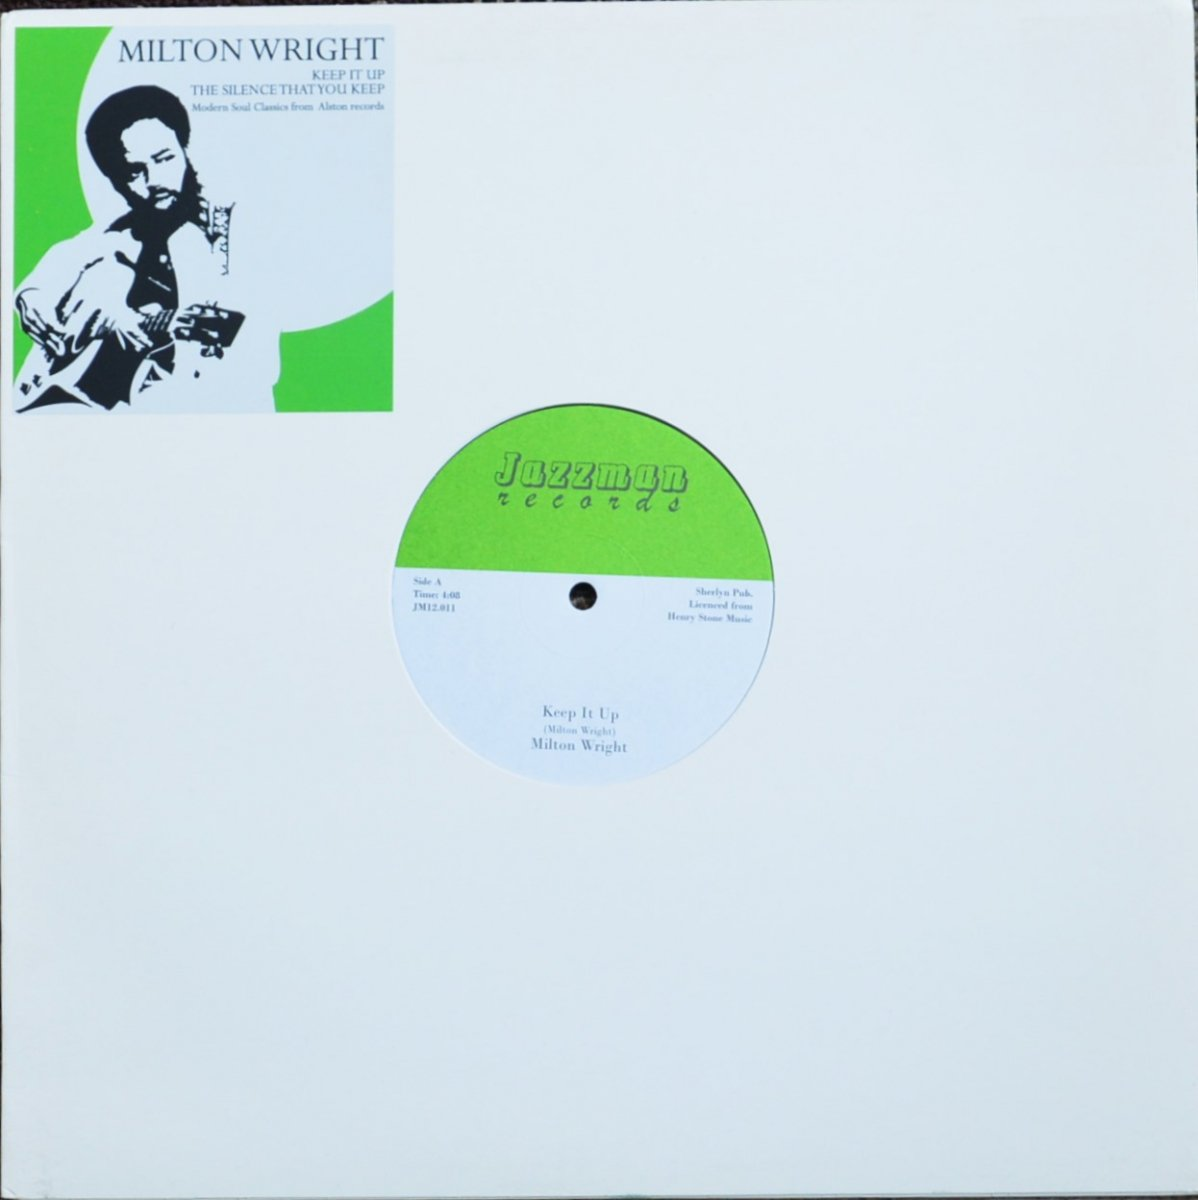 MILTON WRIGHT / KEEP IT UP / THE SILENCE THAT YOU KEEP (12